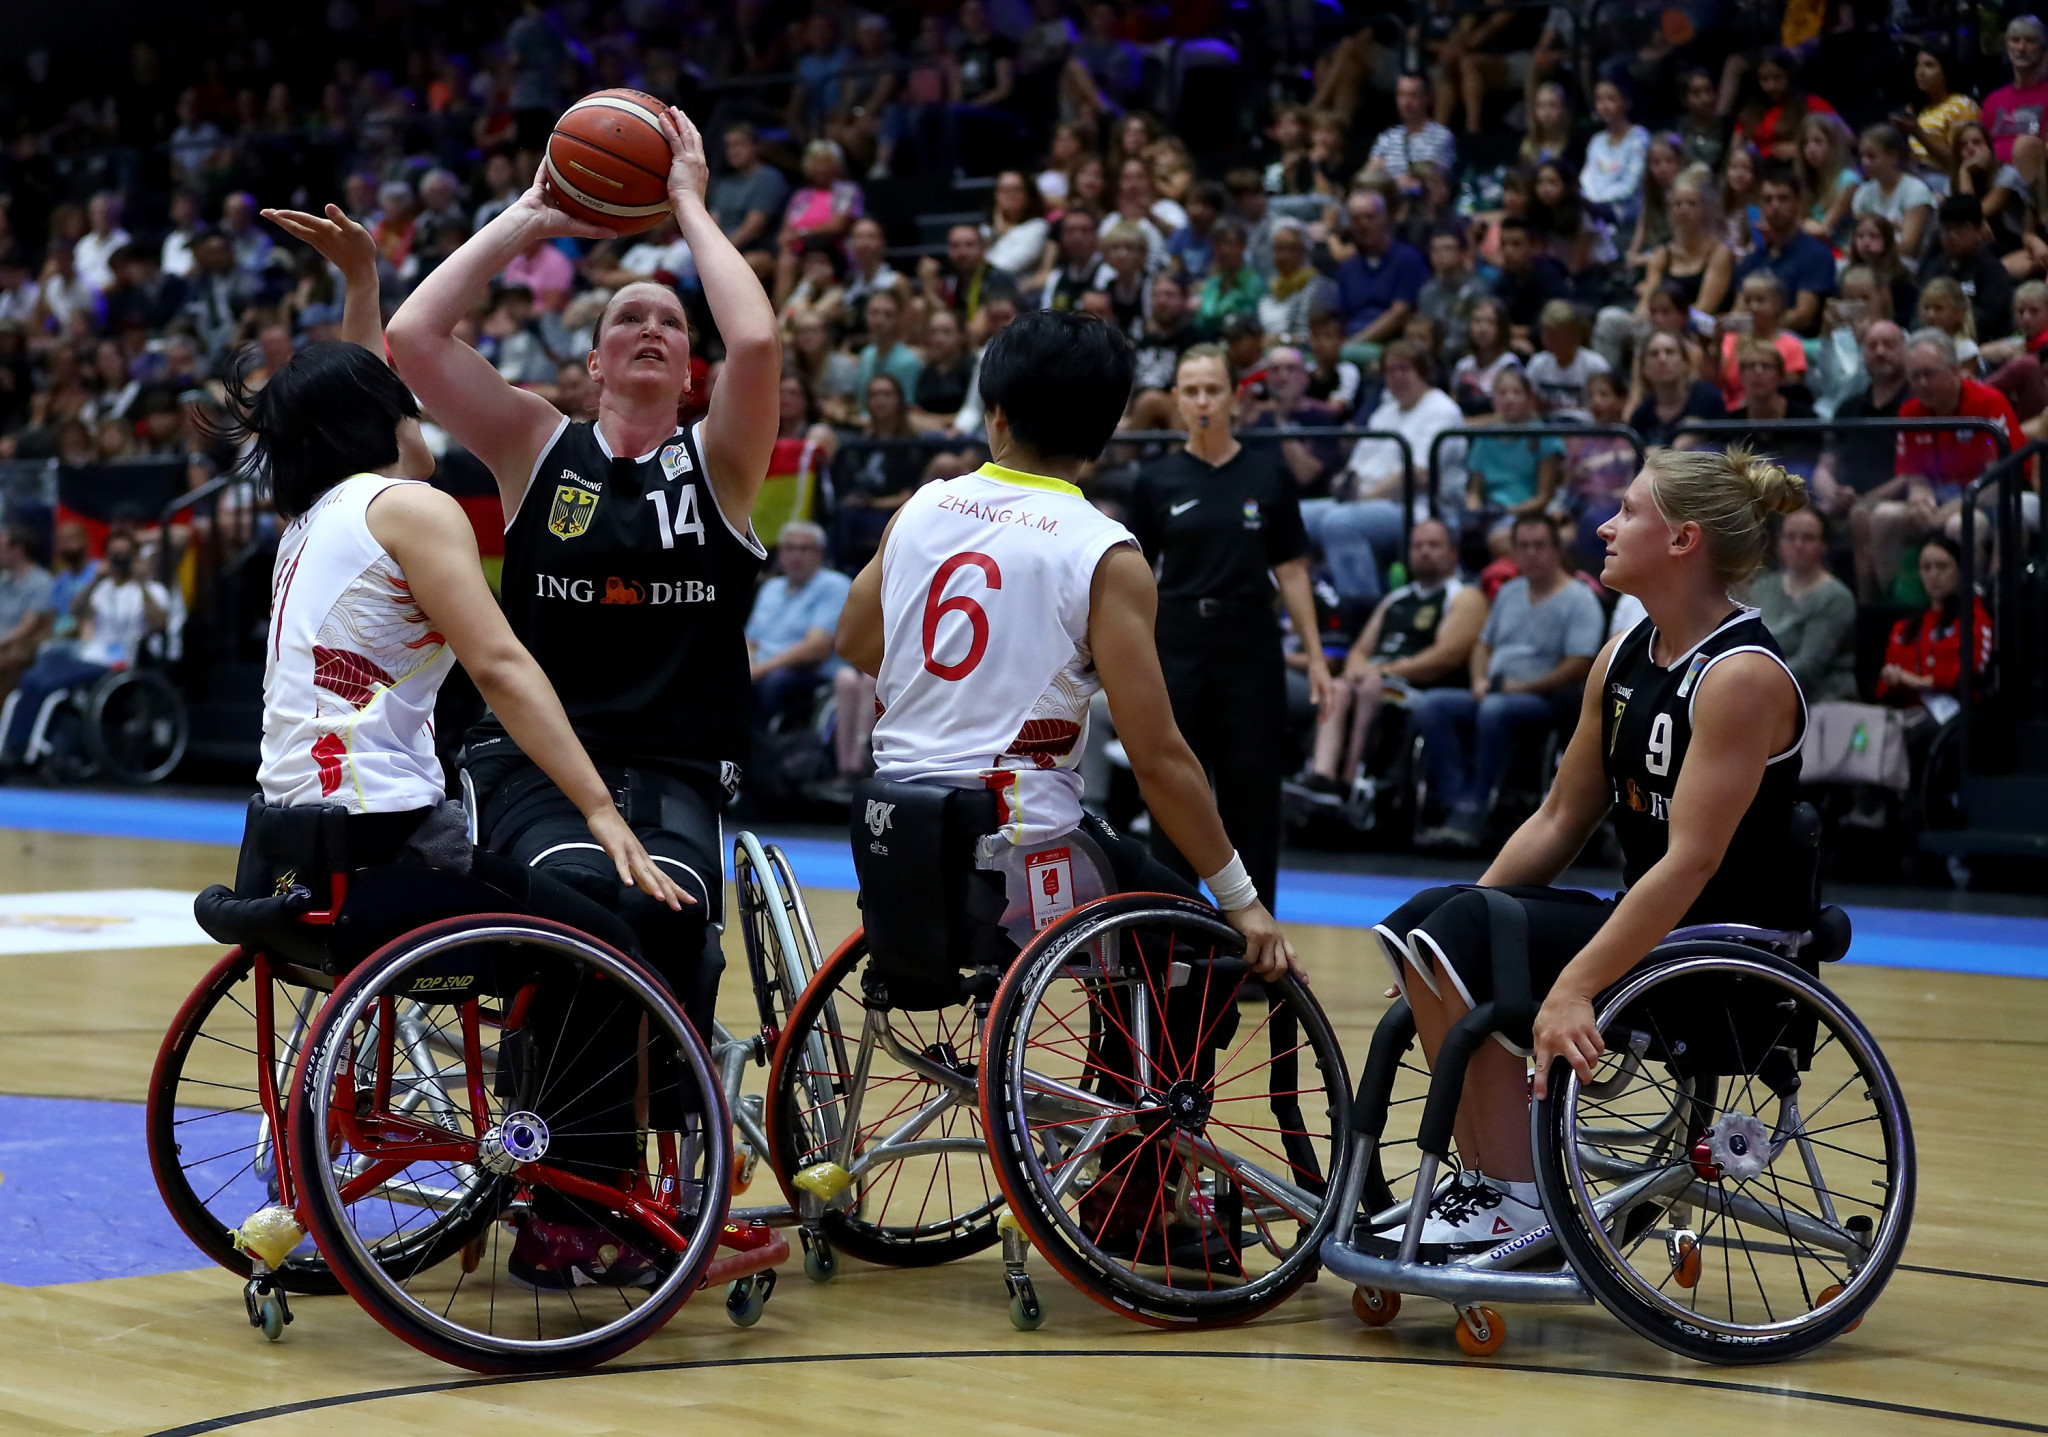 Horst Strohkendl became involved with wheelchair sports in 1969 and developed the classification code for wheelchair basketball ©Getty Images